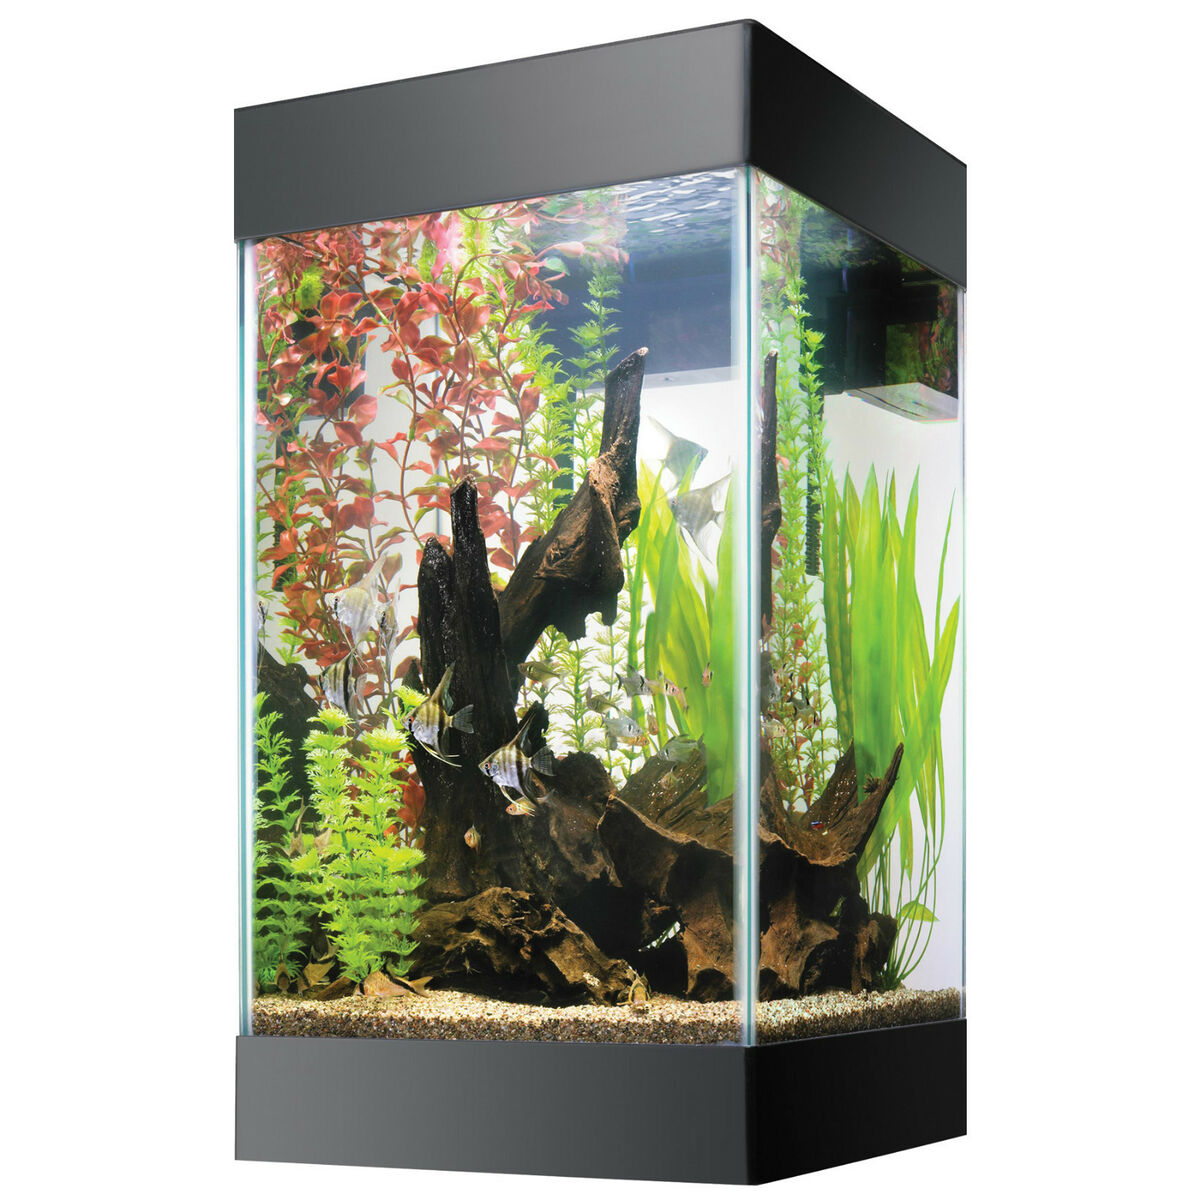 Tropical aquarium pillar joy studio design gallery for Aqueon fish tank